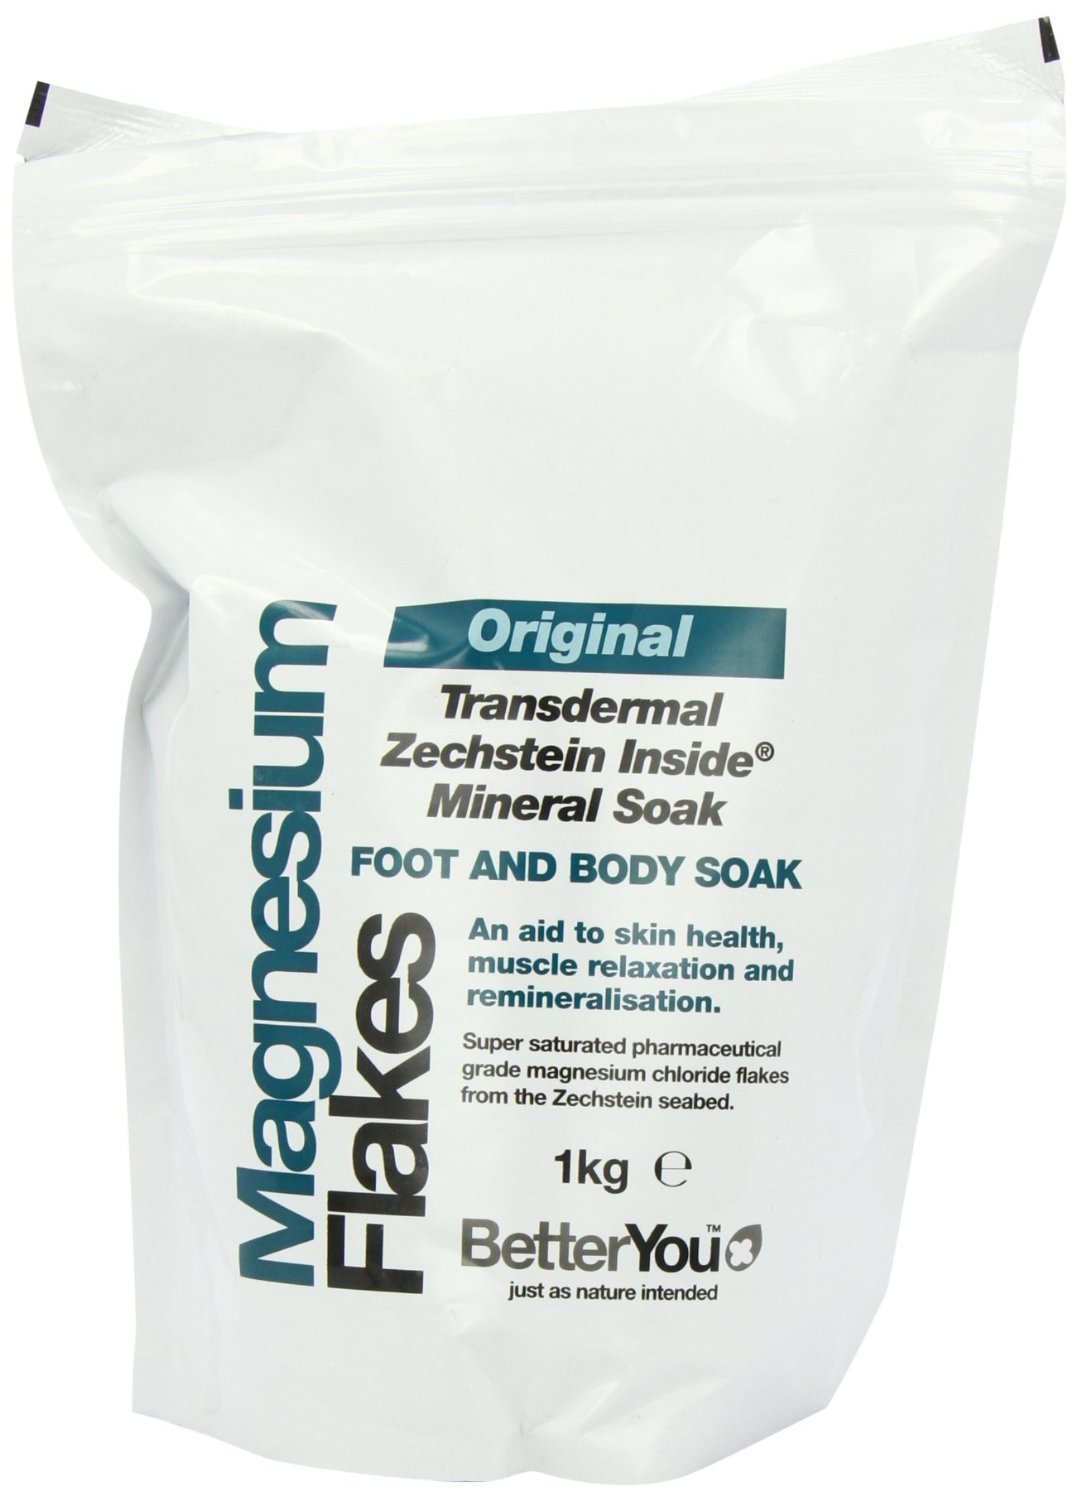 'Better You Magnesium Original Flakes 1KG Add to a foot or body bath for whole body health and relaxation. BetterYou